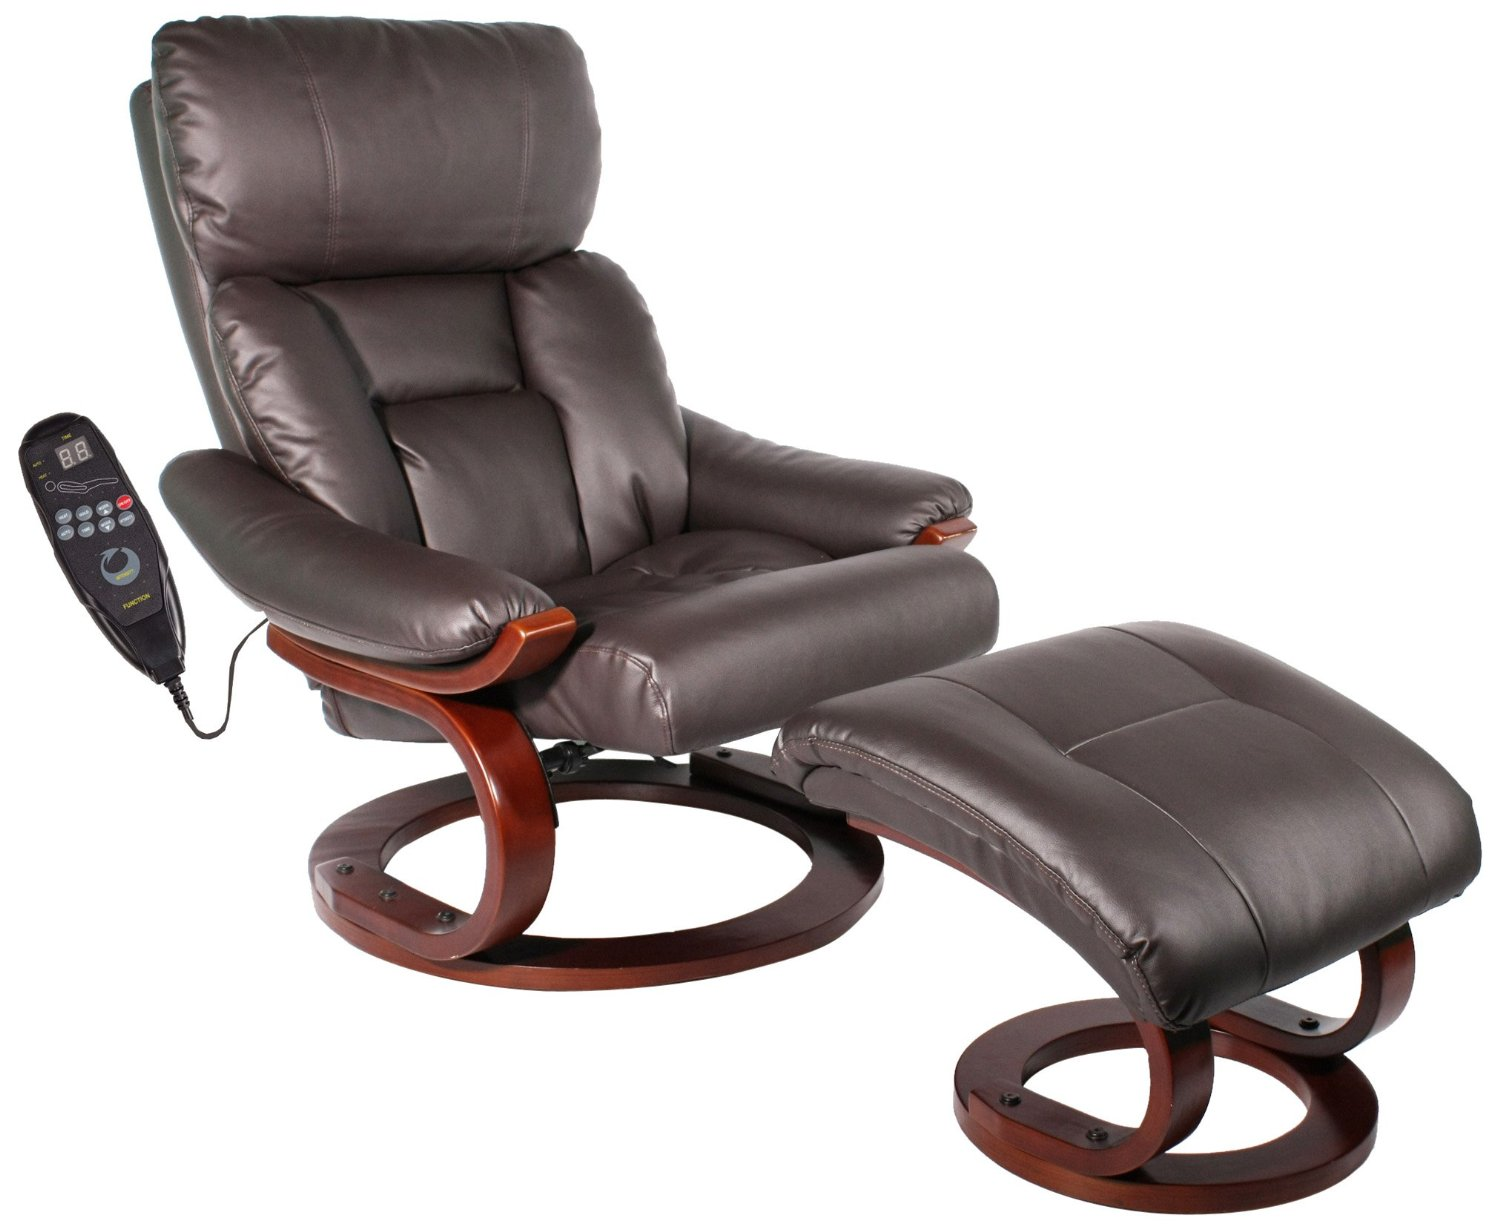 Comfort Vantin Deluxe Massaging Recliner And Ottoman